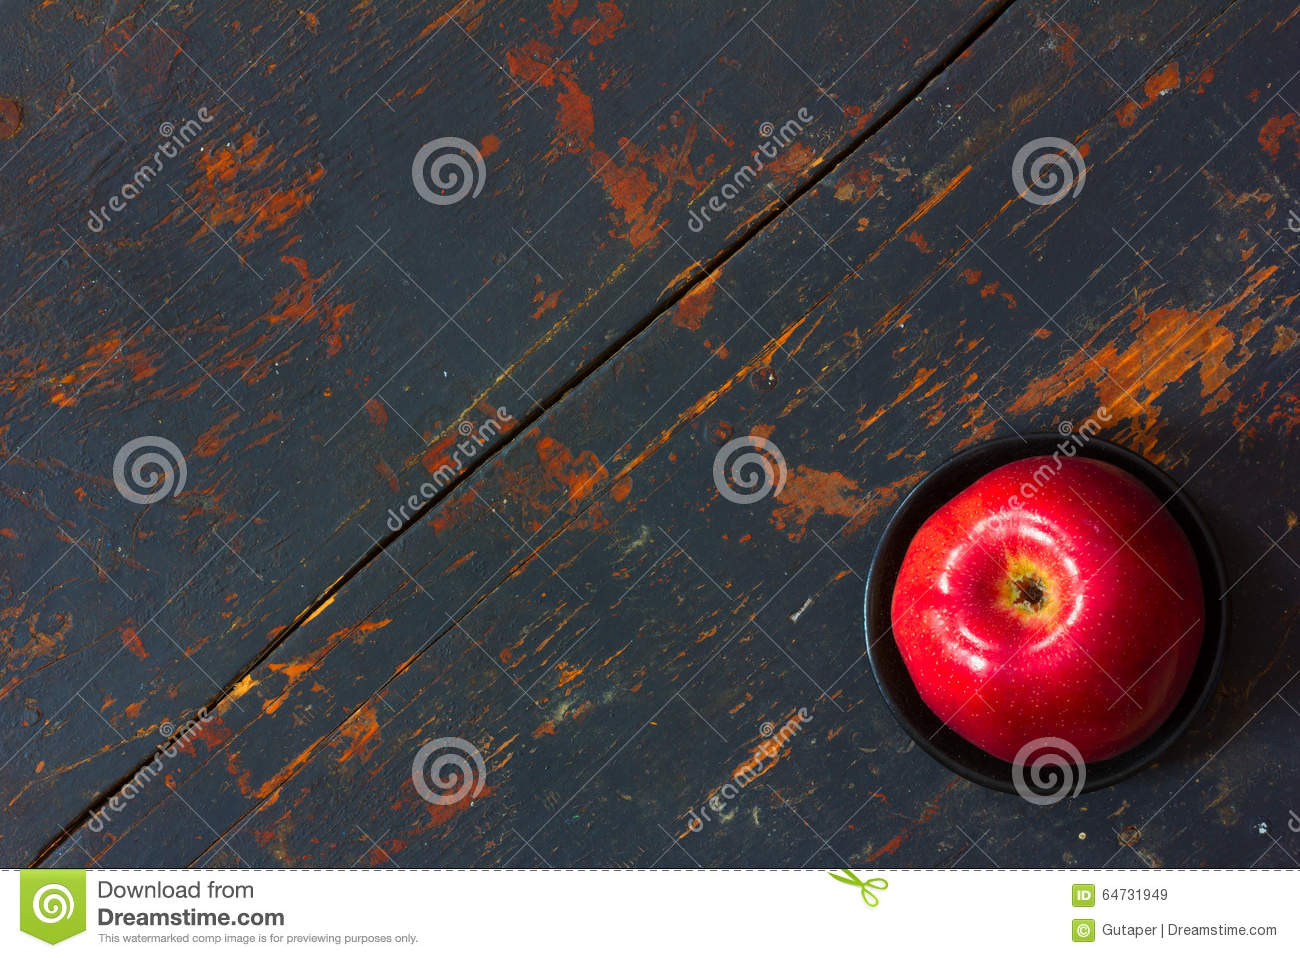 Red ripe apple in a black saucer on old background